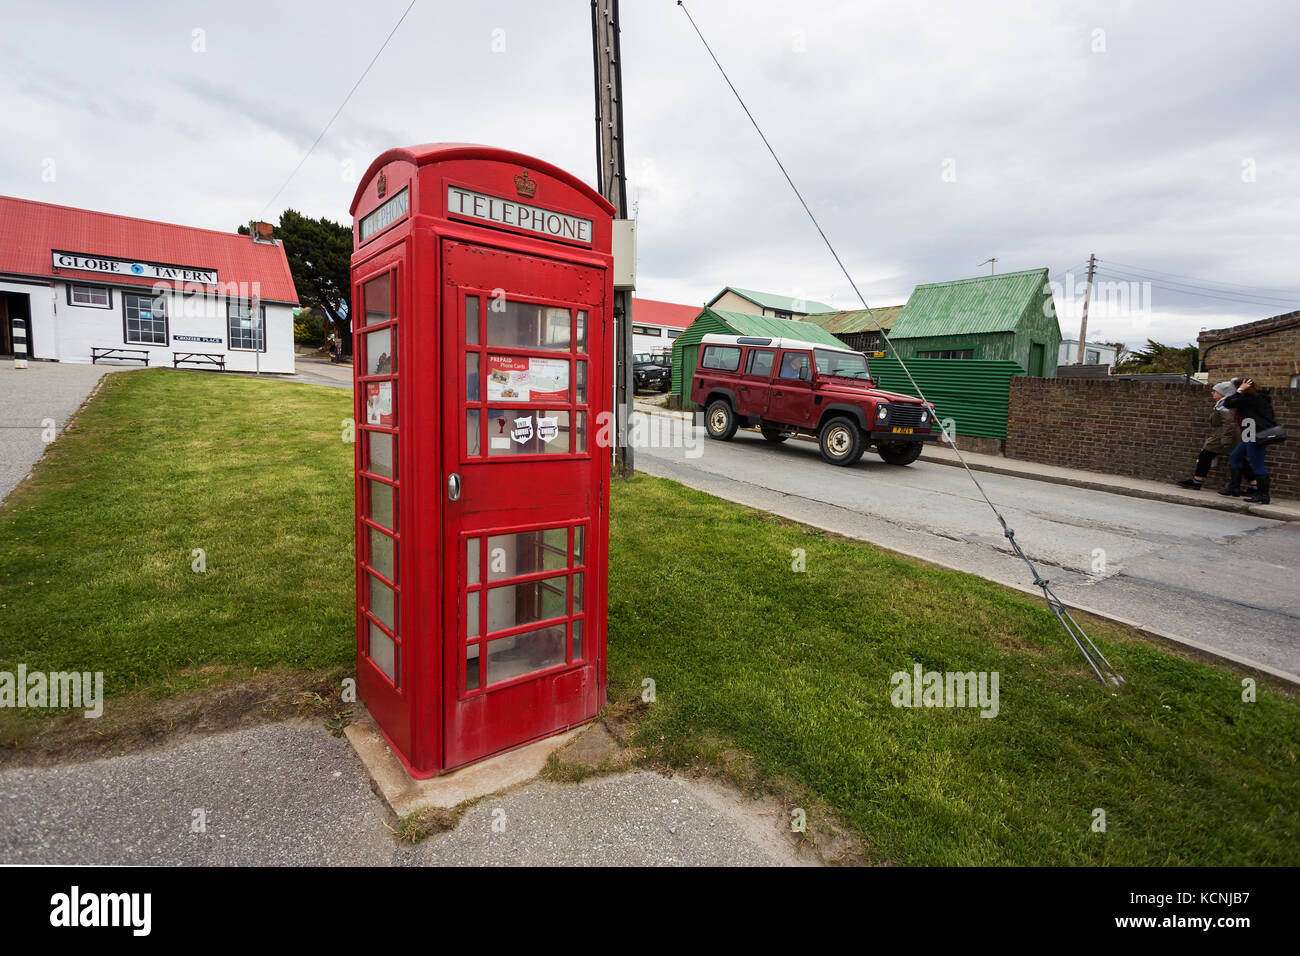 The town of Stanley, capital of the Falkland Islands maintains a sense of british heritage with its telephone booths - Stock Image